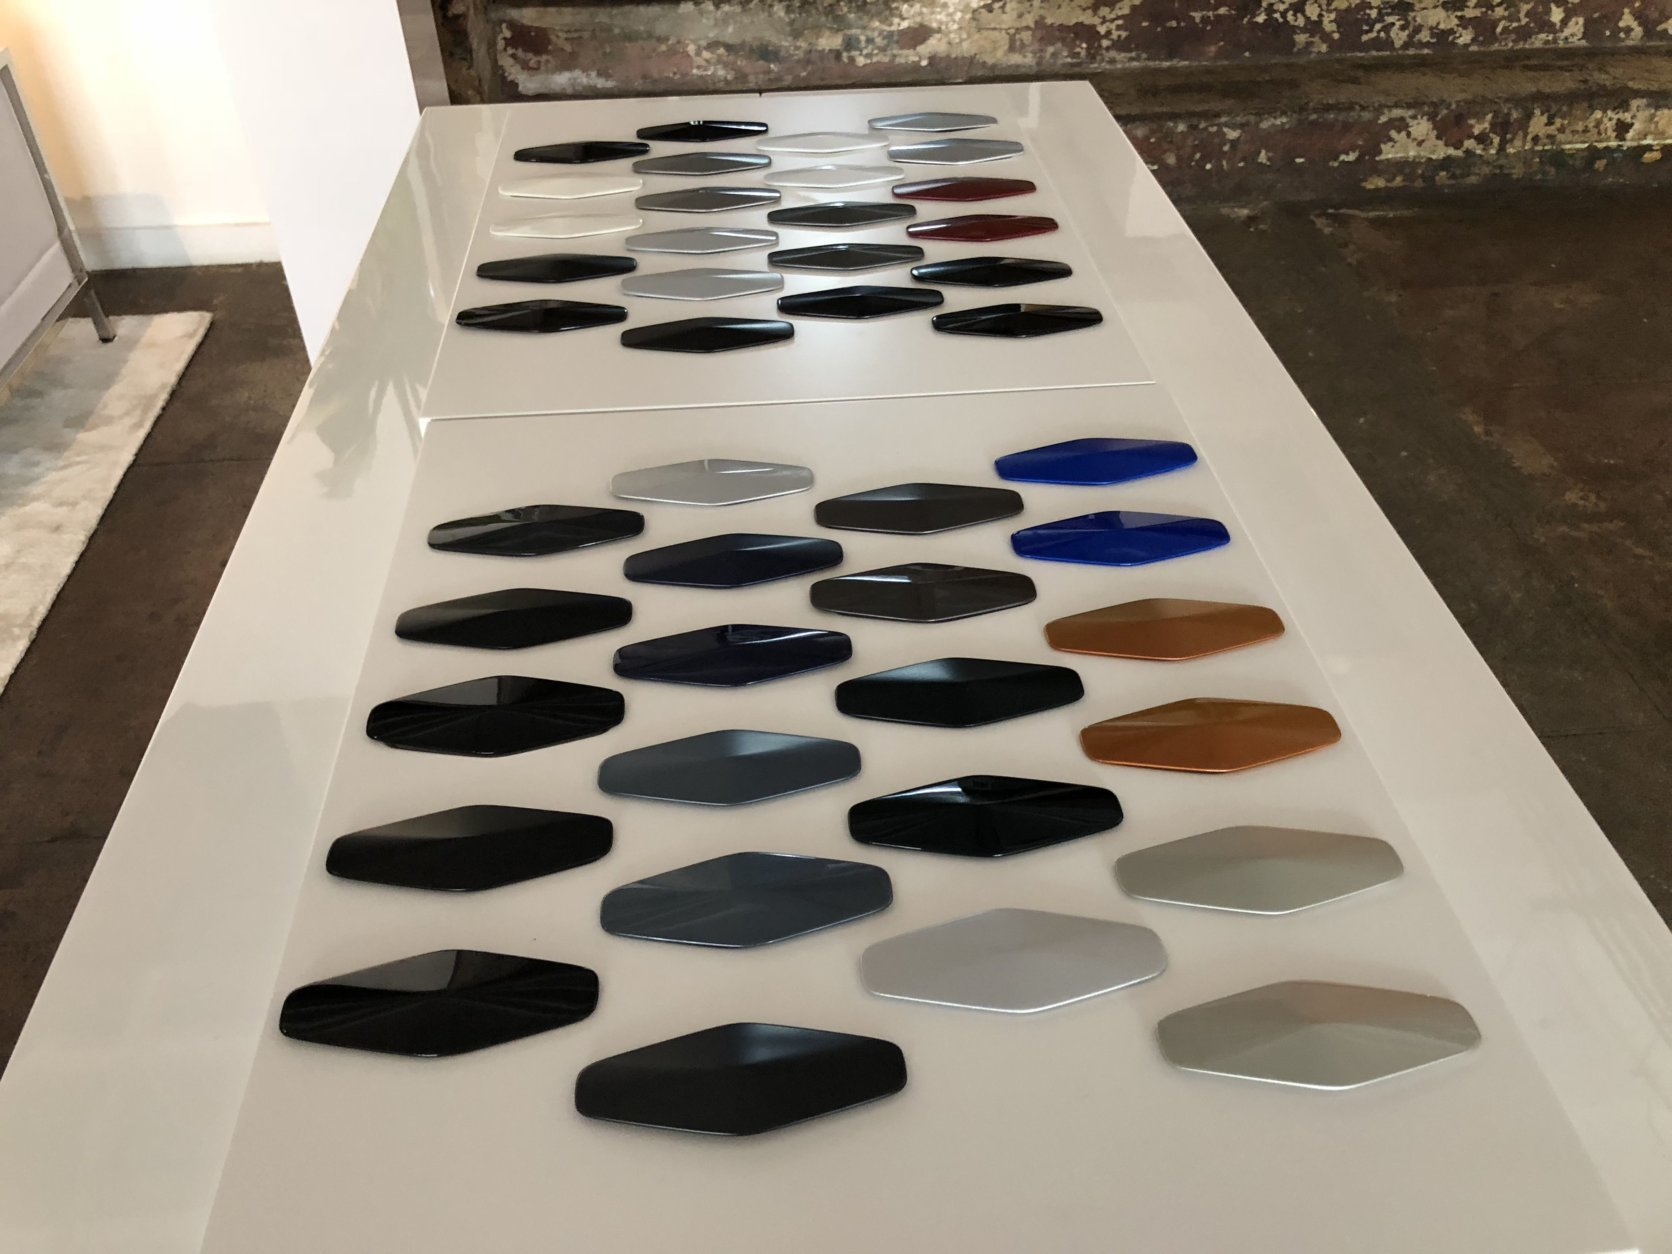 Some of the swatches of the many finishes to chose from. (WTOP/Mike Parris)